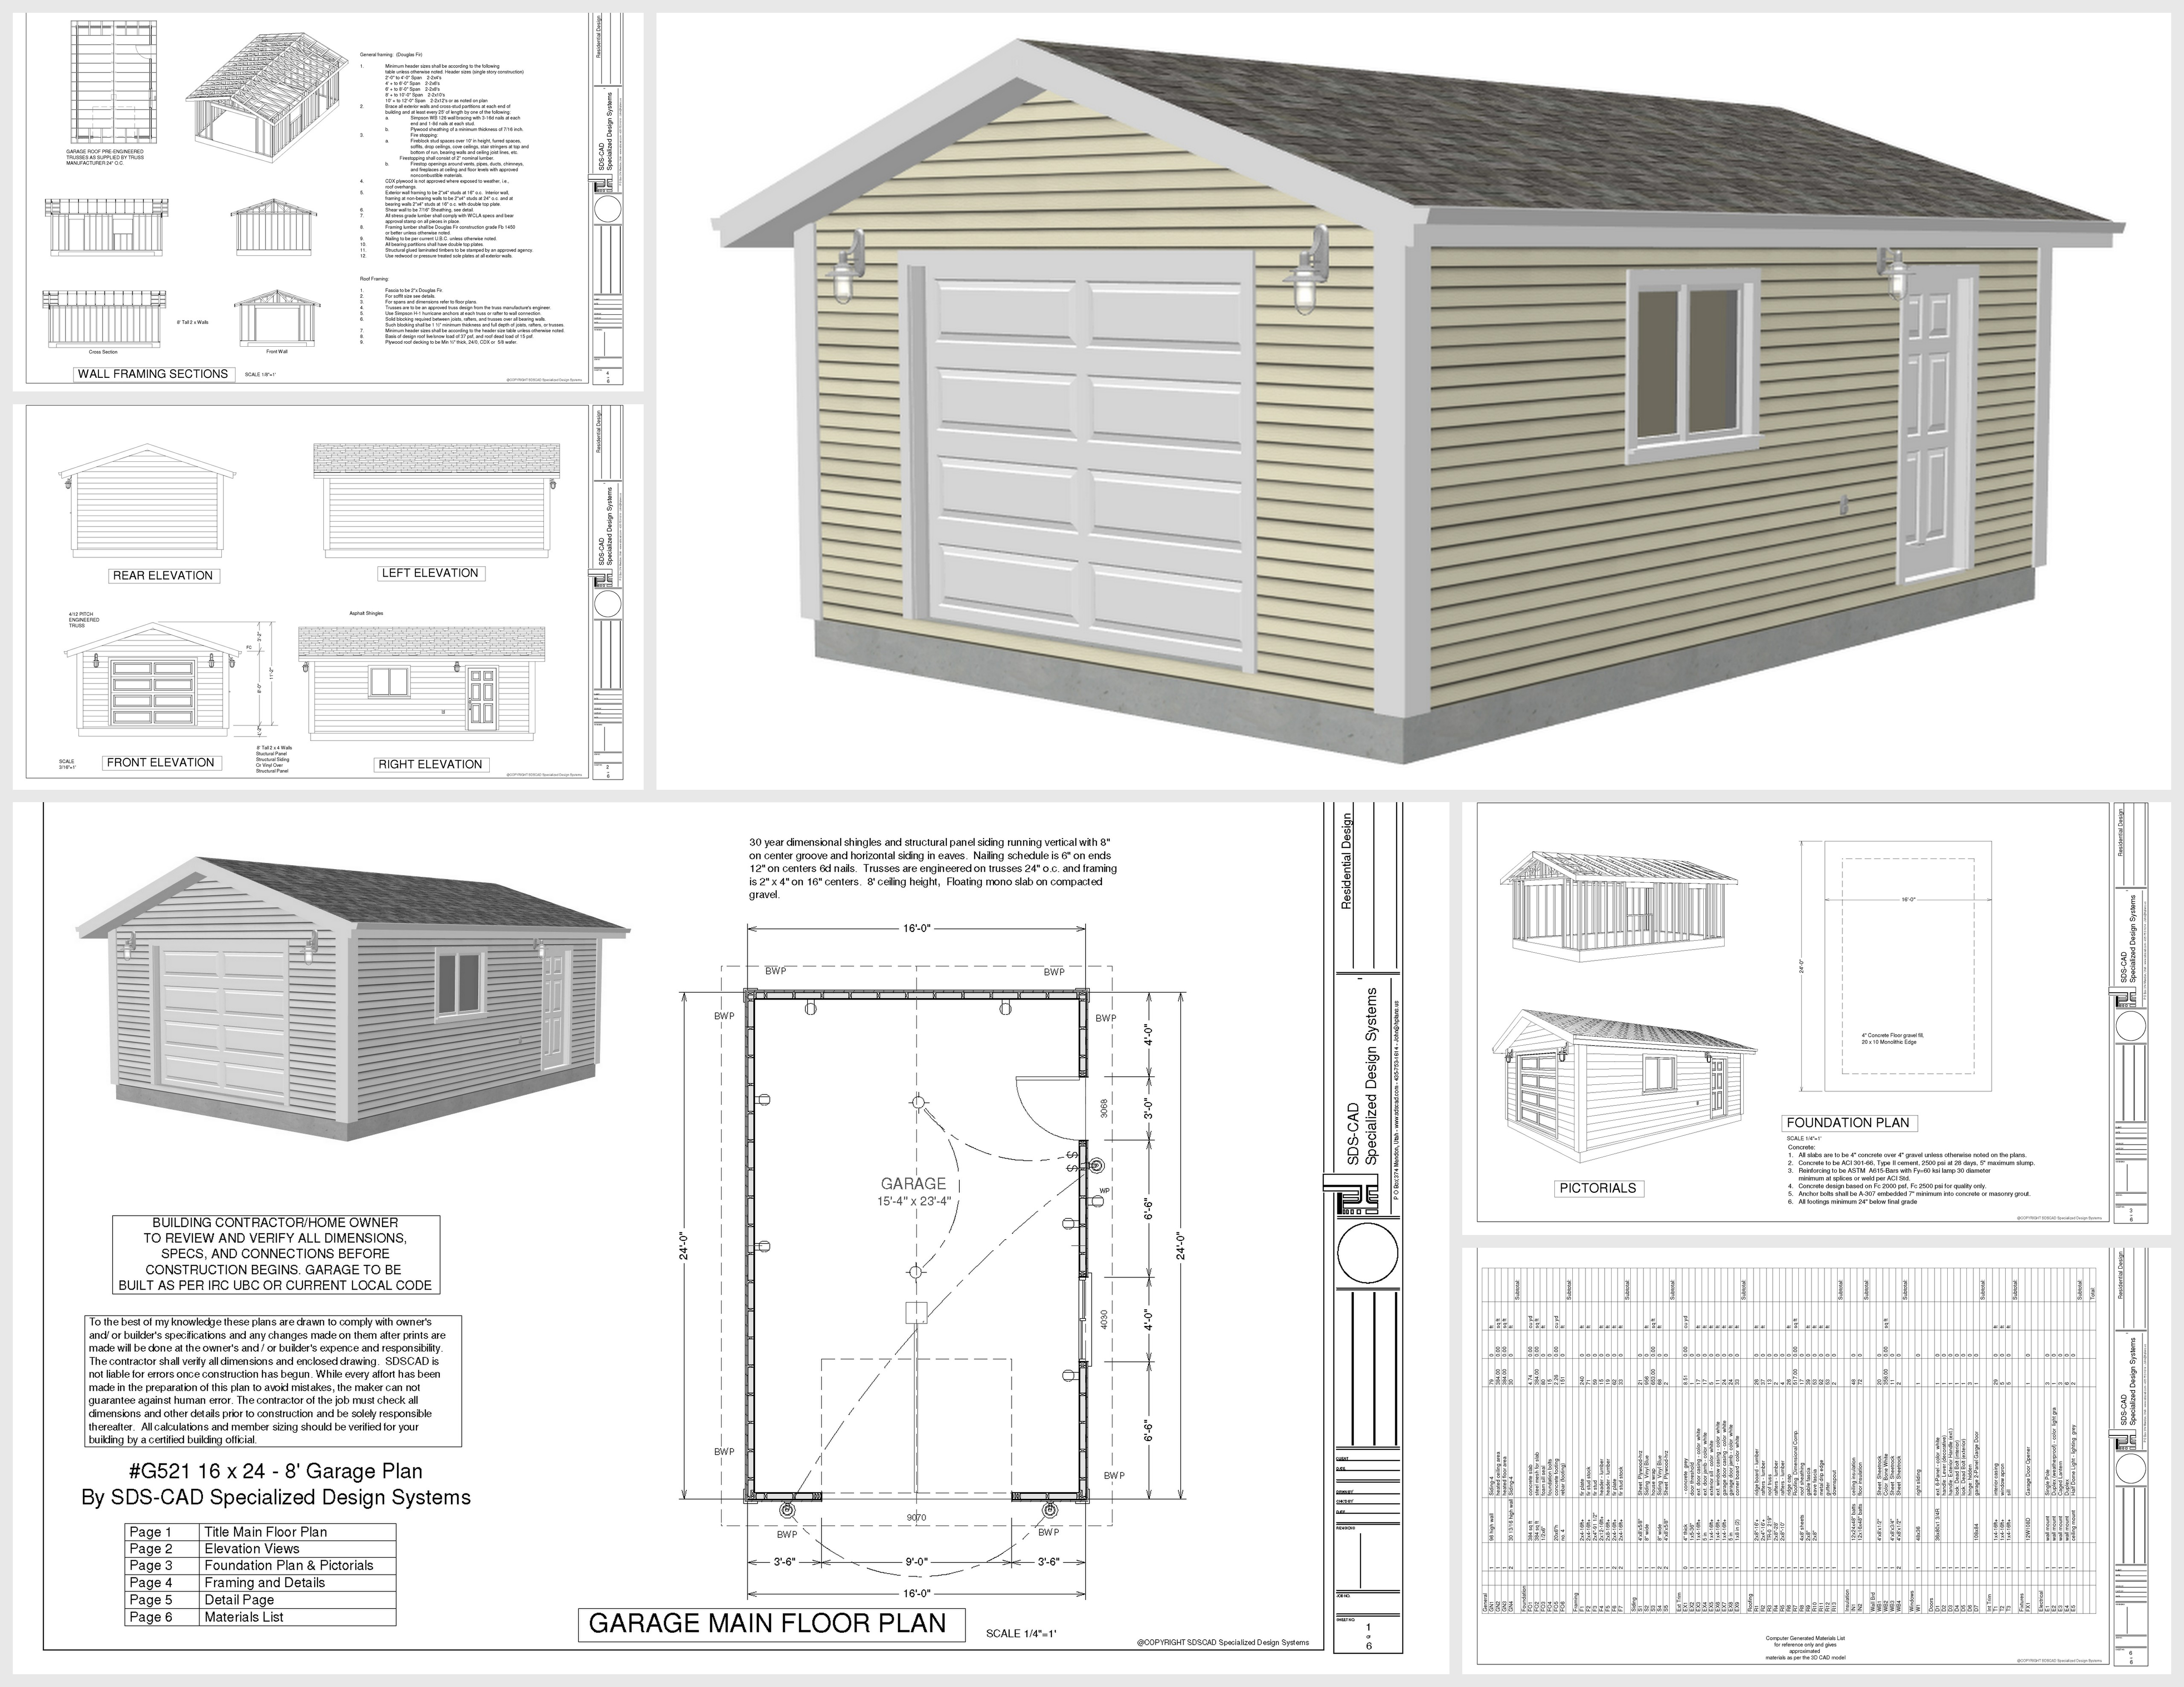 Free garage plans g521 16 x 24 x 8 garage plans pdf and dwg 16 car garage